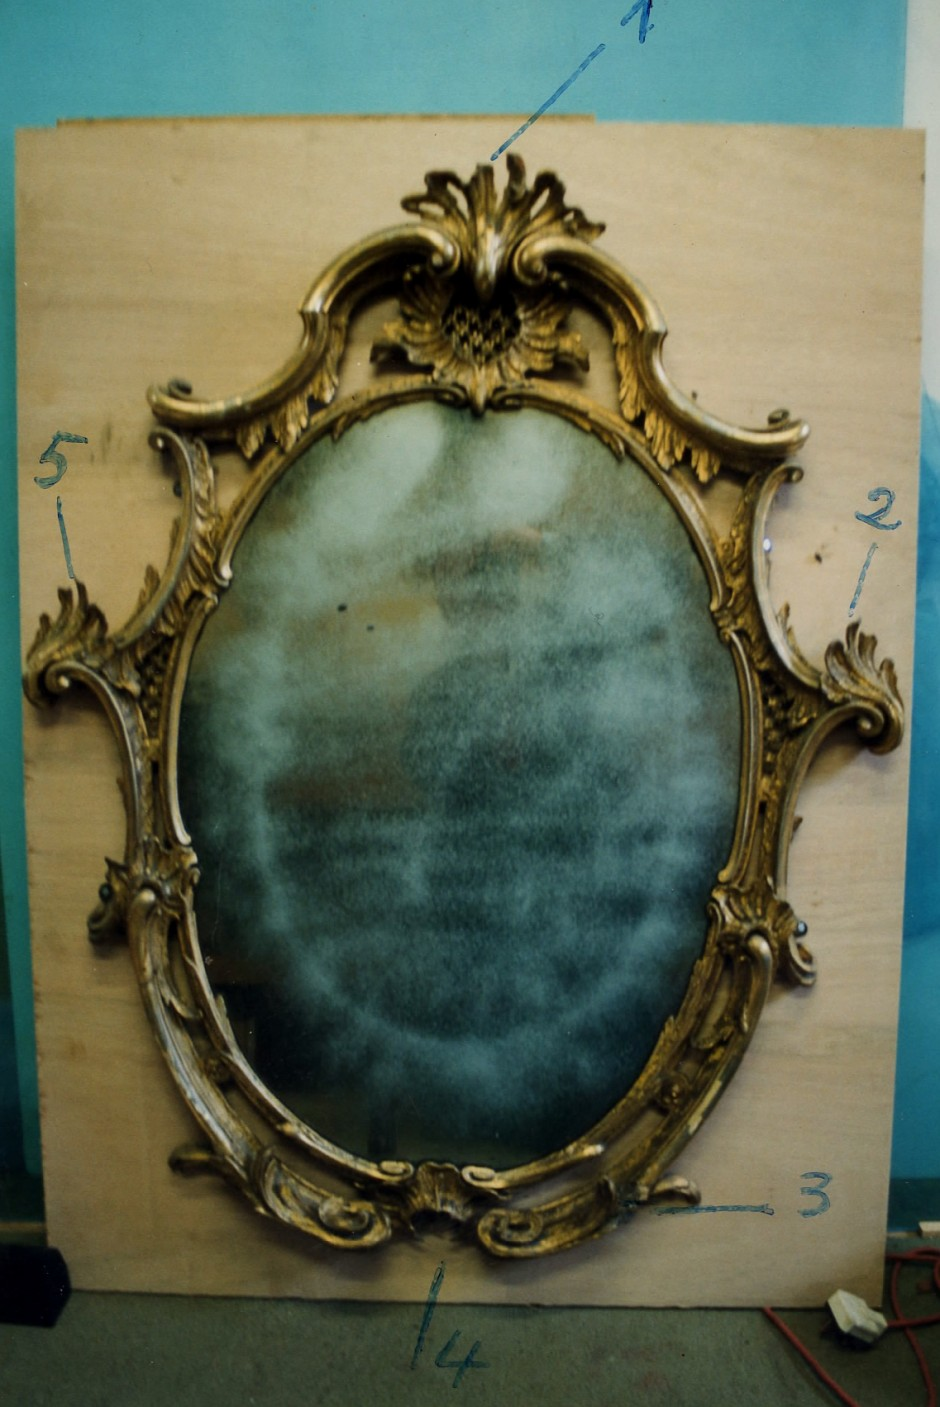 The original mirror prior to restoration - mirror needing restoration